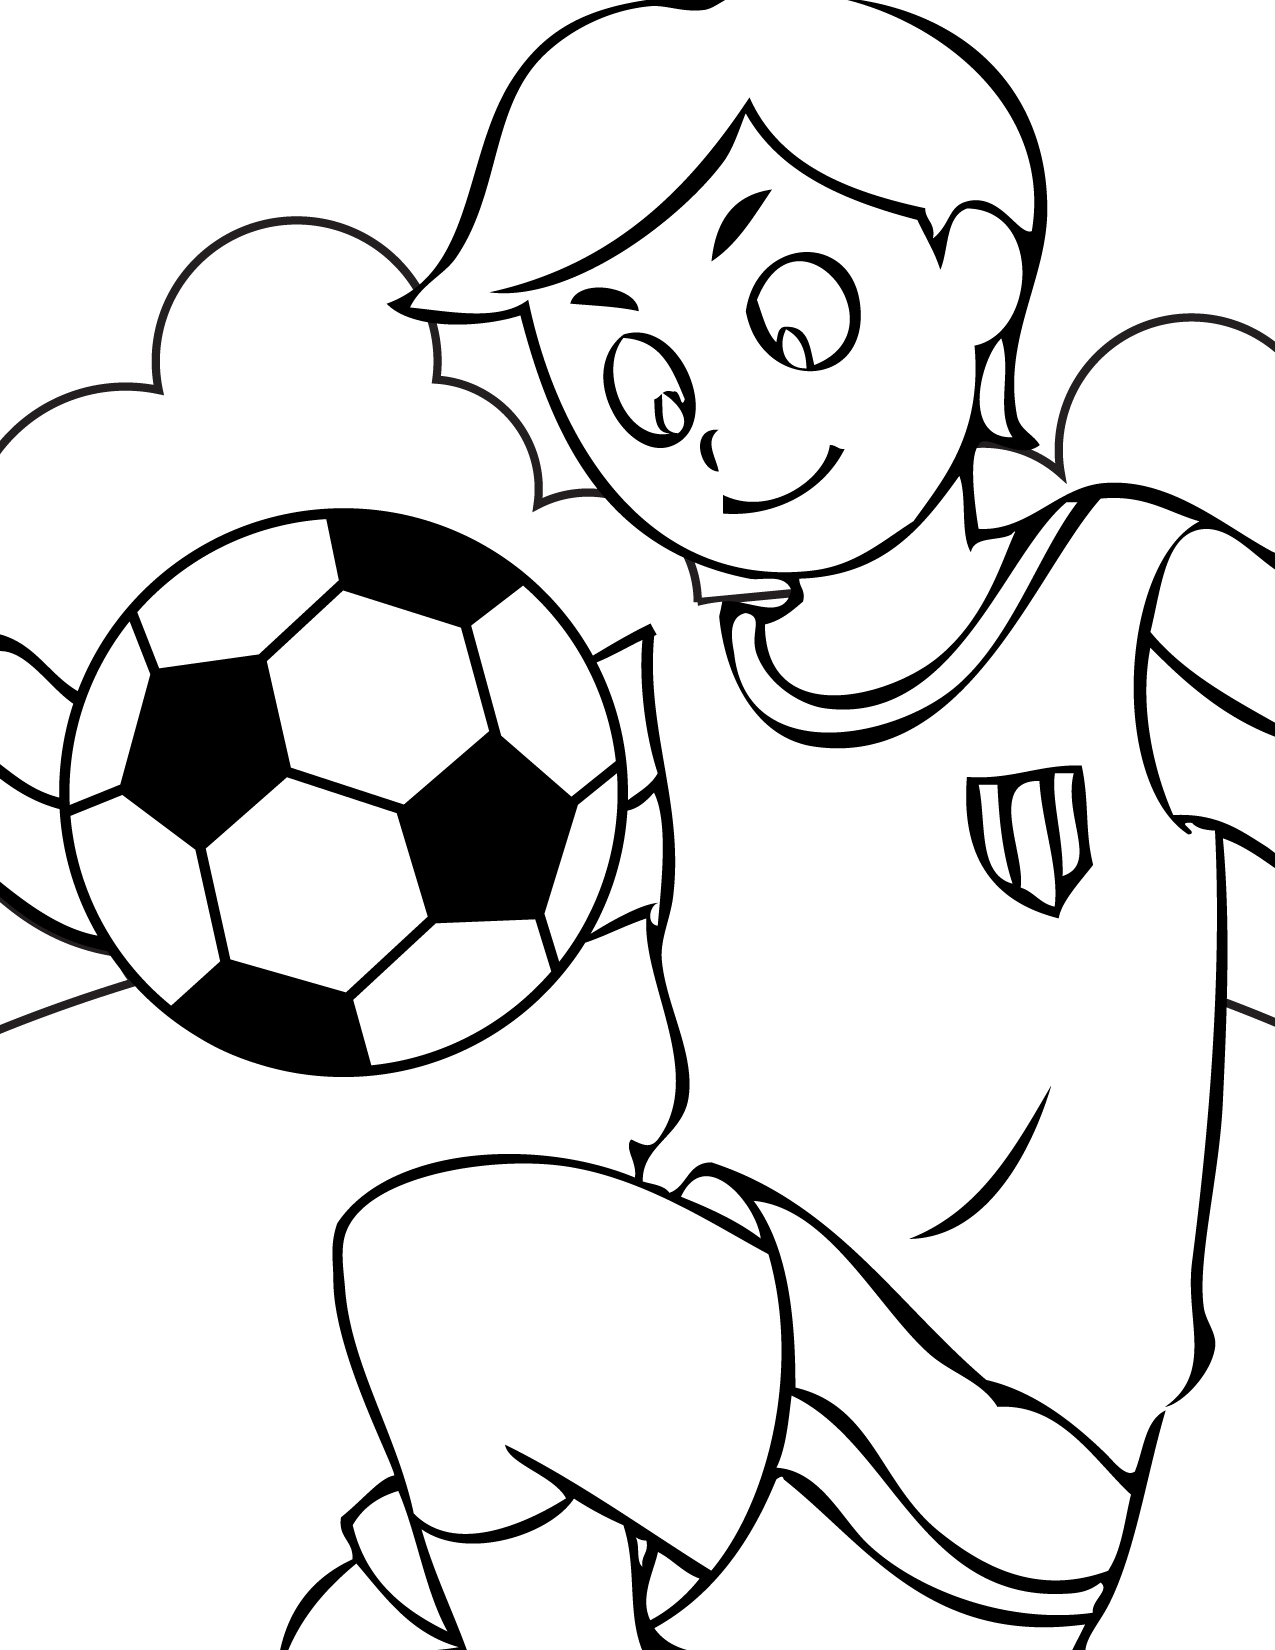 sports colouring pictures free printable sports coloring pages colouring sports pictures